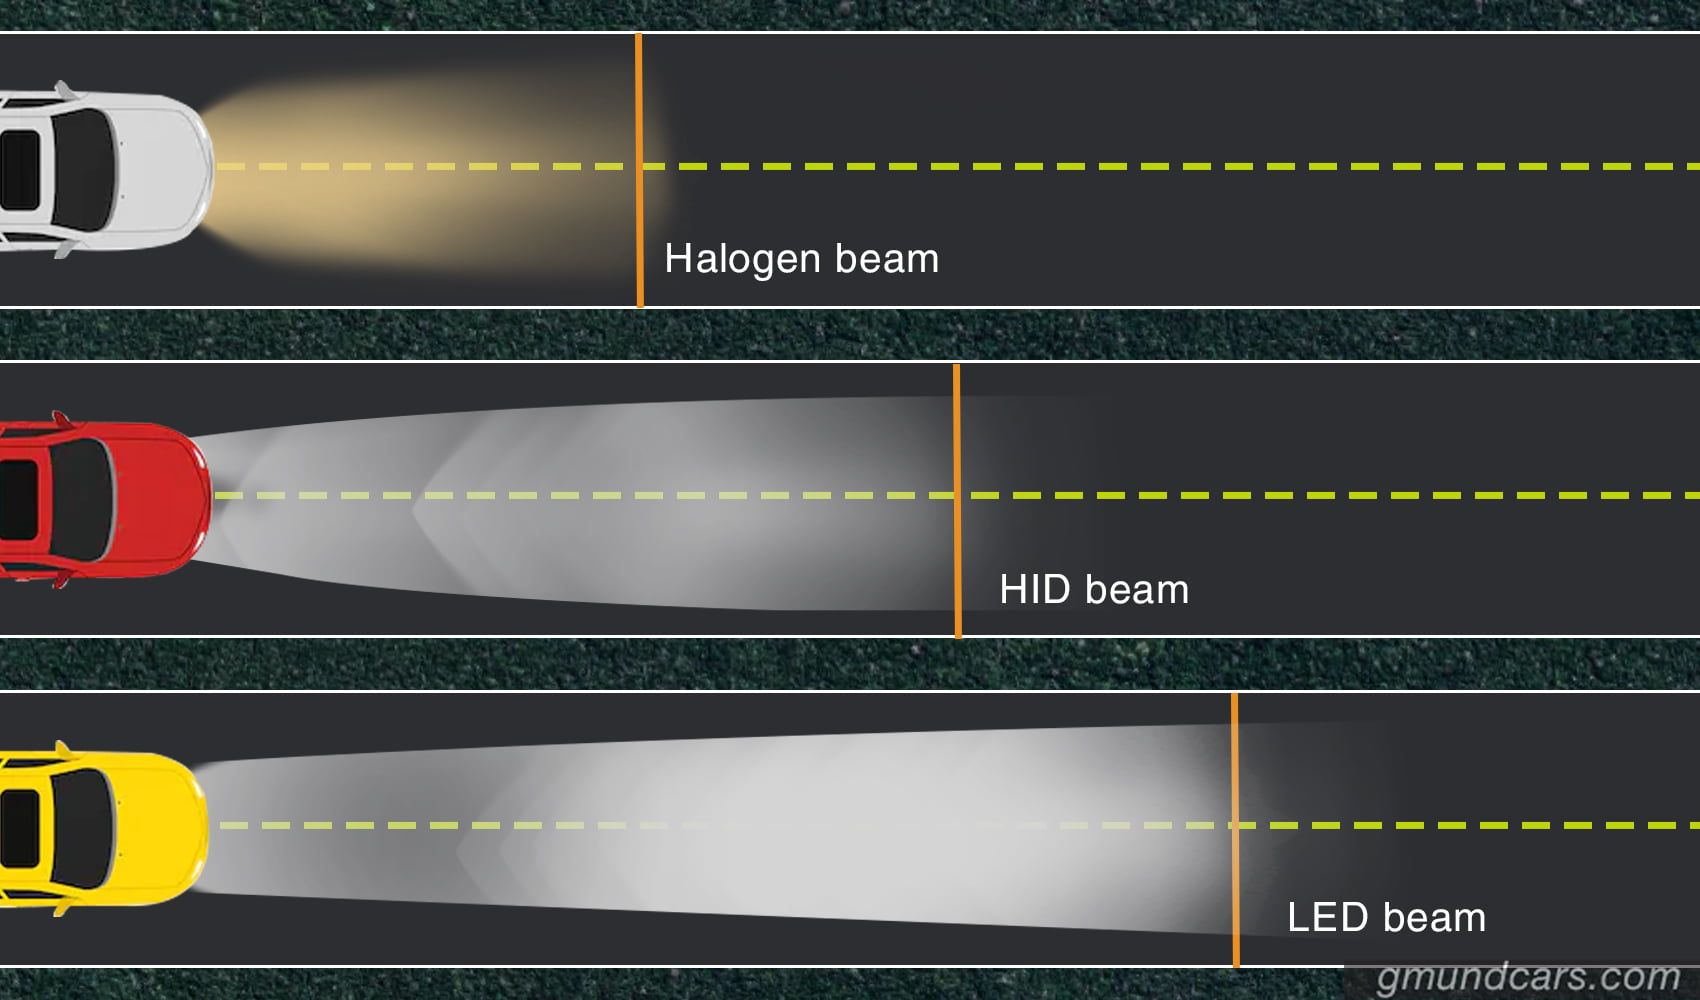 Halogen vs. HID vs. LED beam